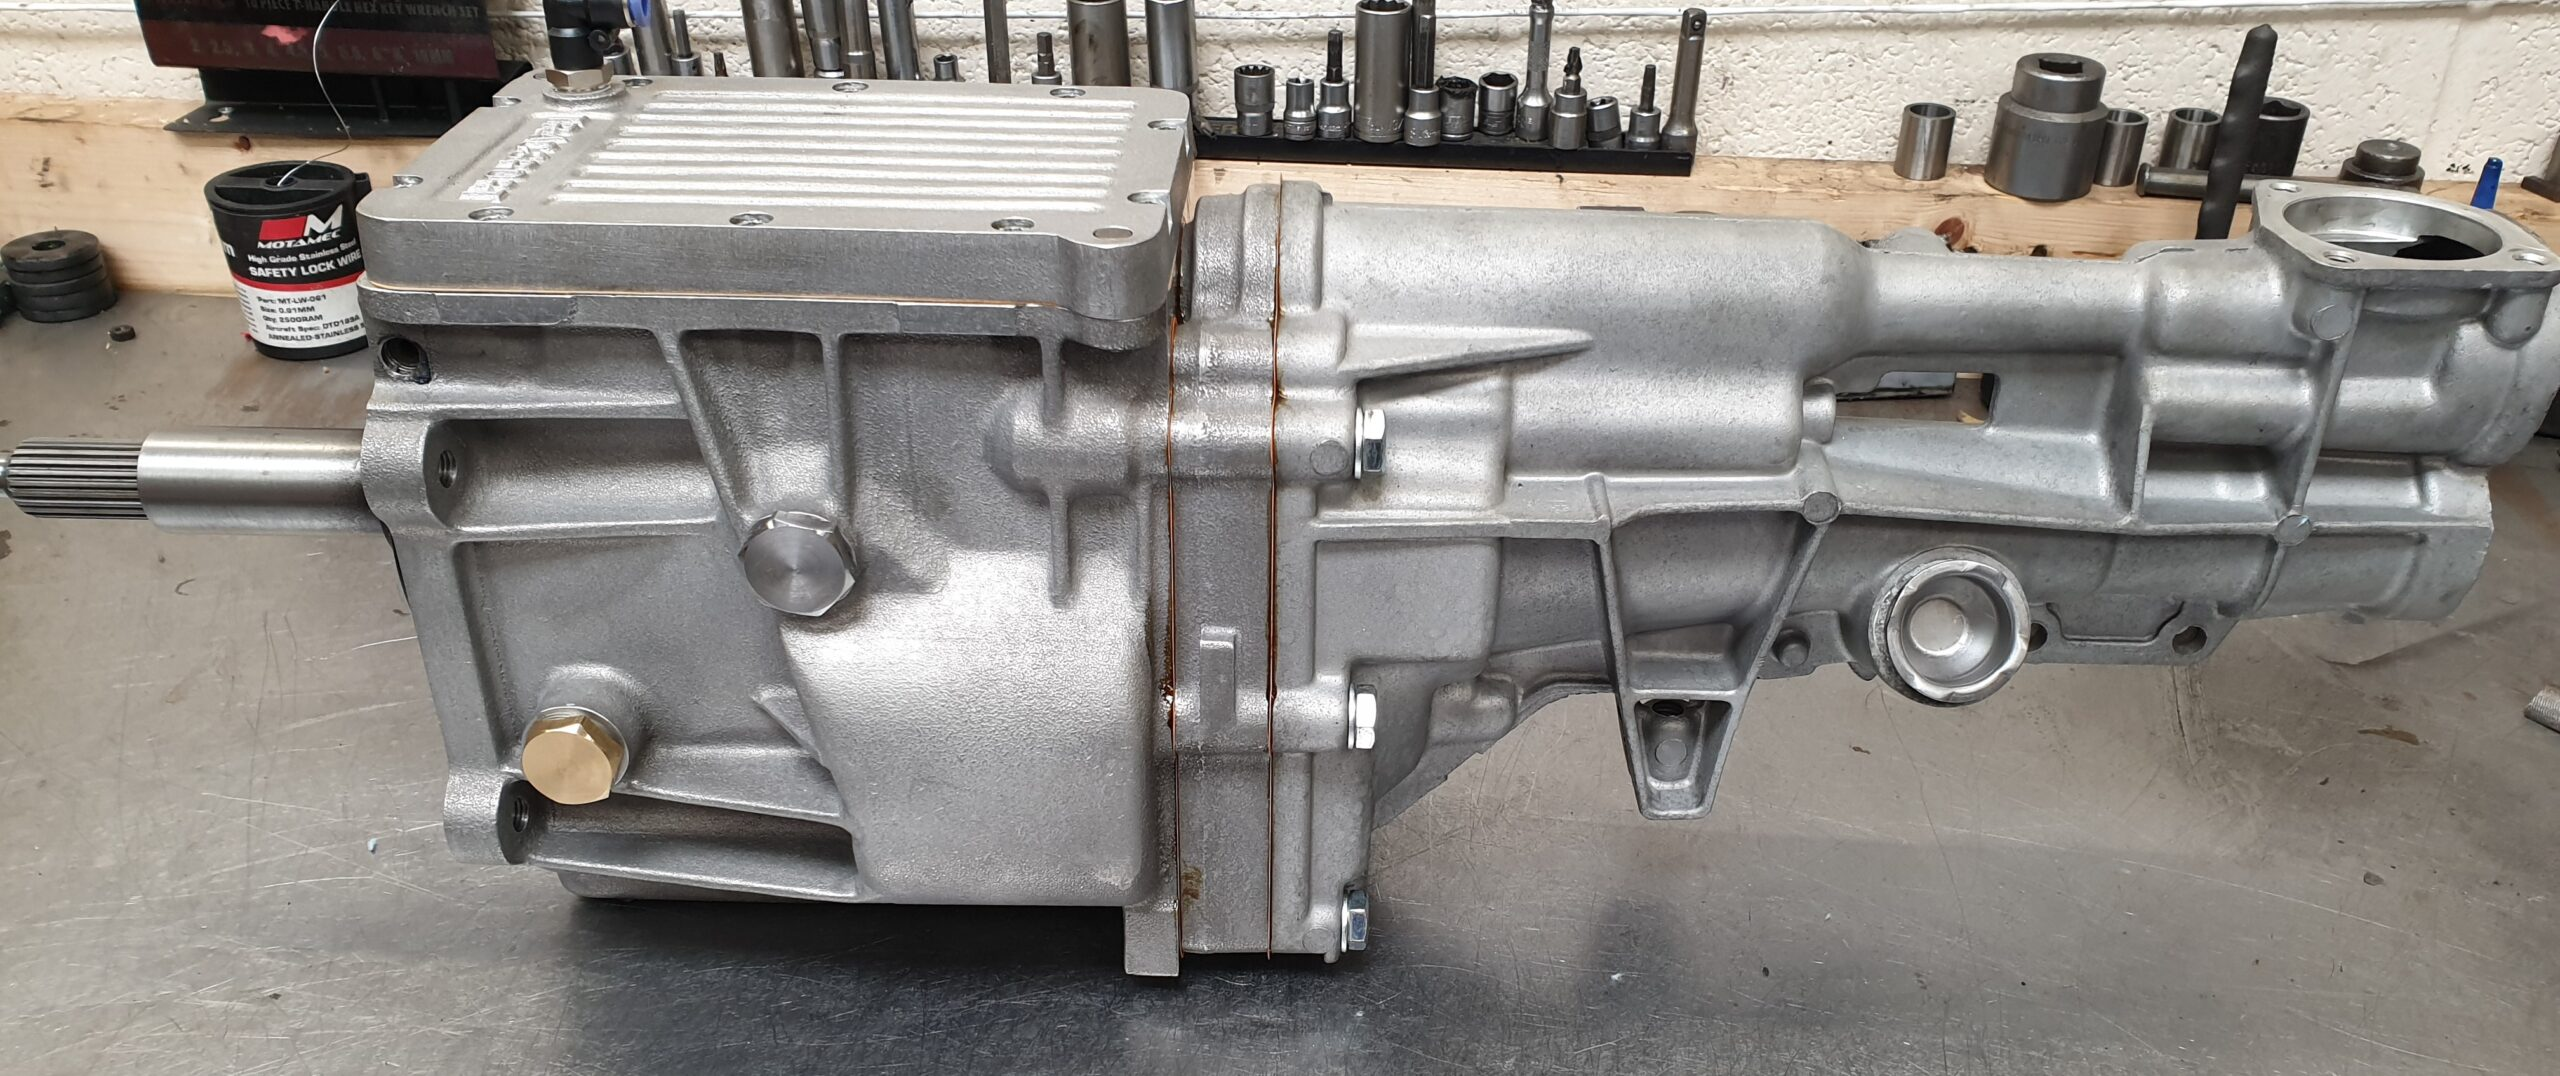 Ford Type 9 Gearbox Rebuilt Reconditioned